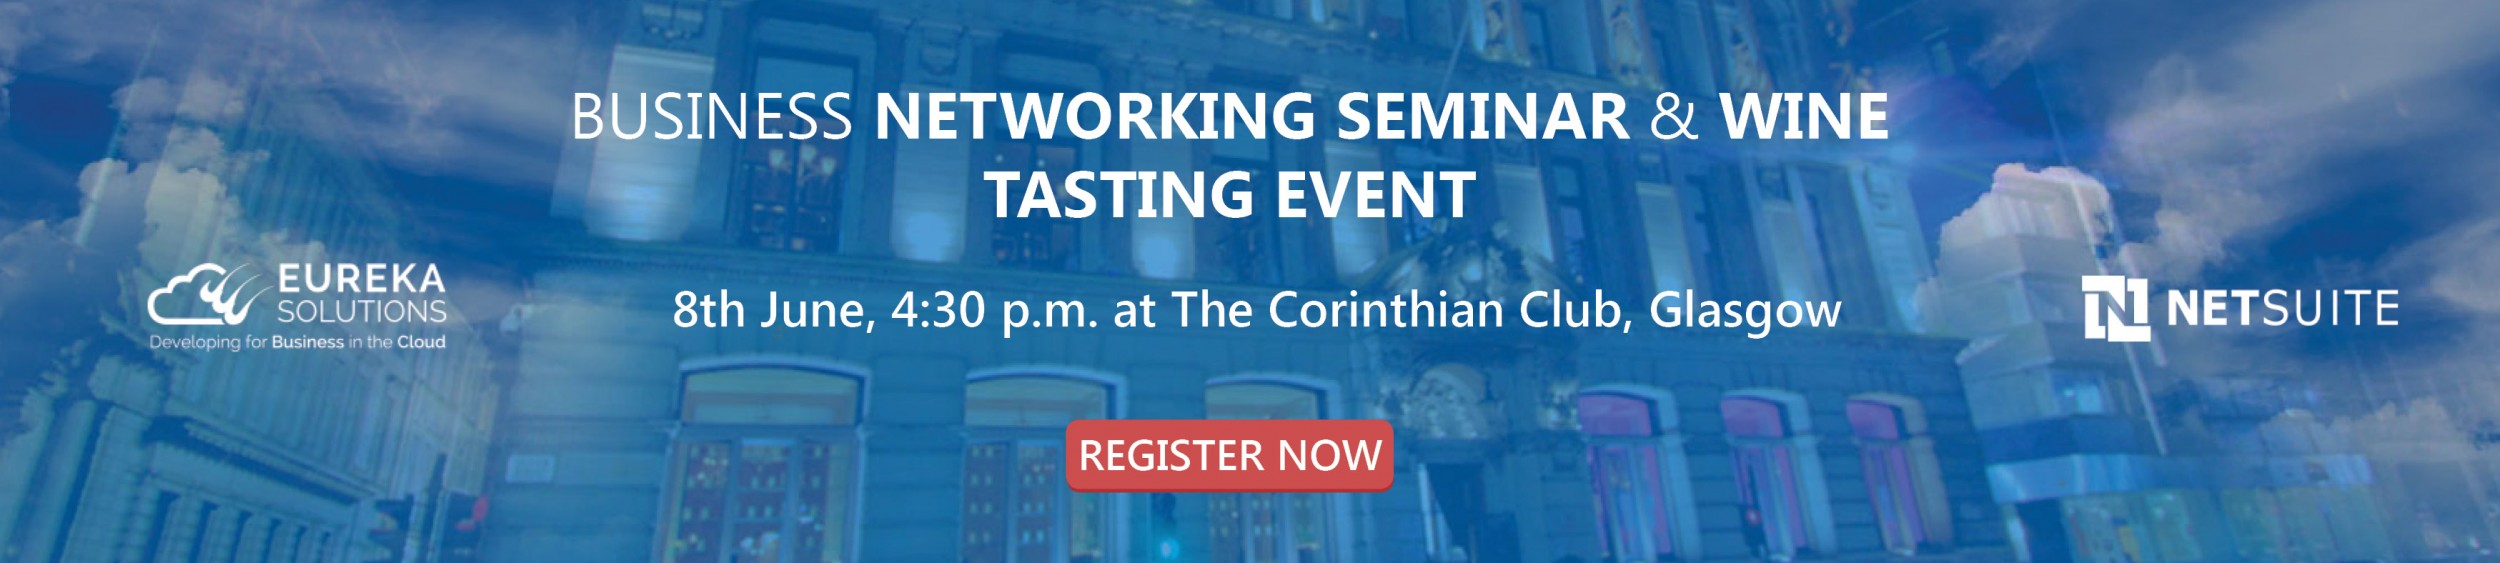 NetSuite Cloud Business Networking and Wine Tasting Seminar